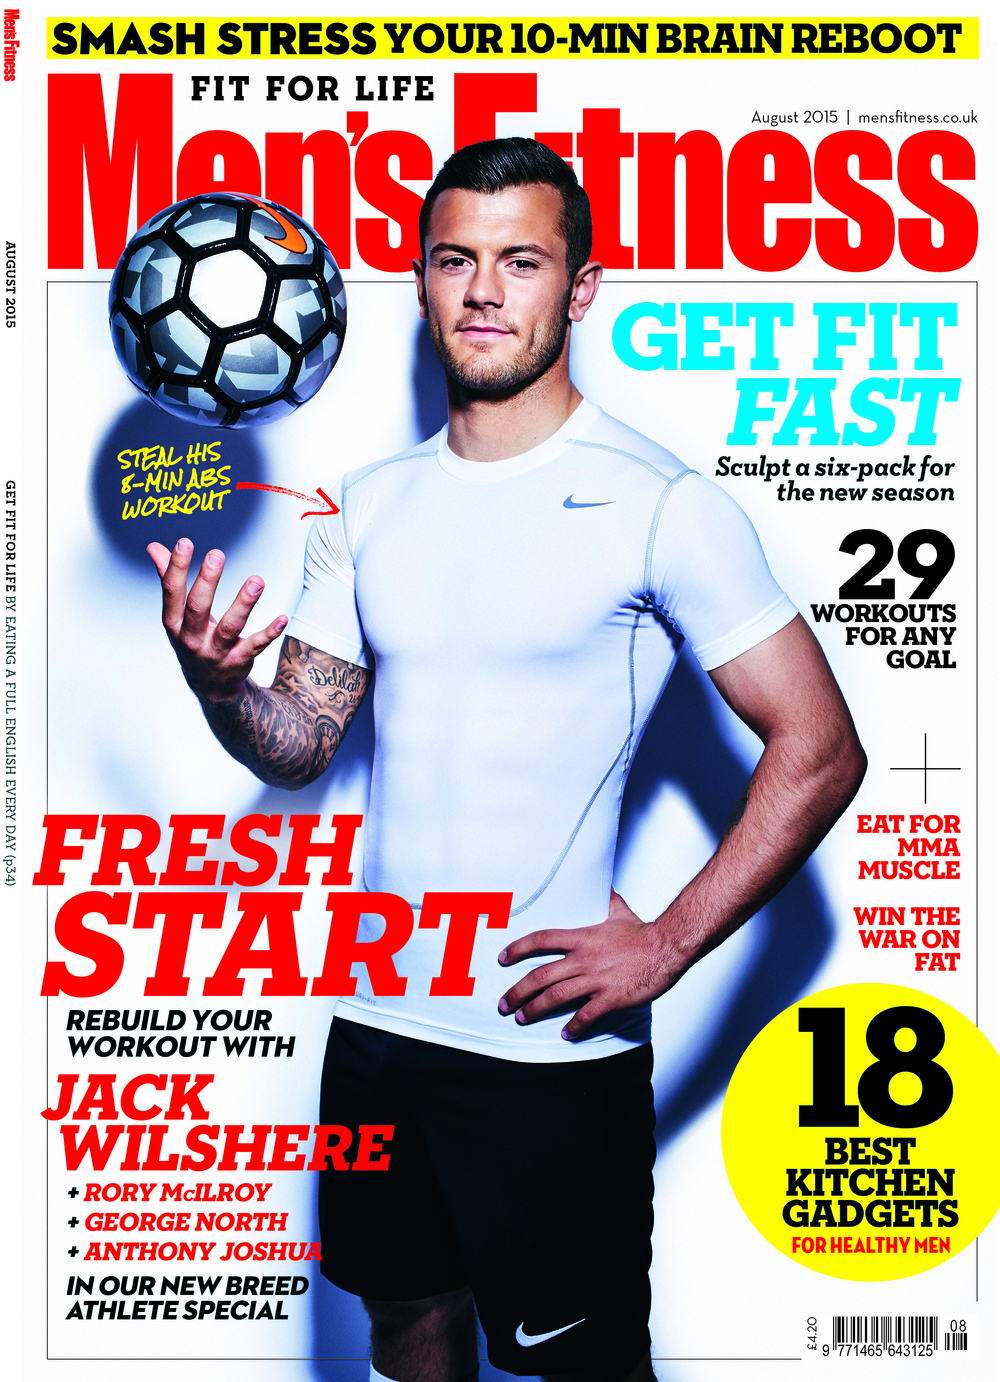 Jack Wilshere shot by David Venni for the August 2015 cover of Men's Fitness